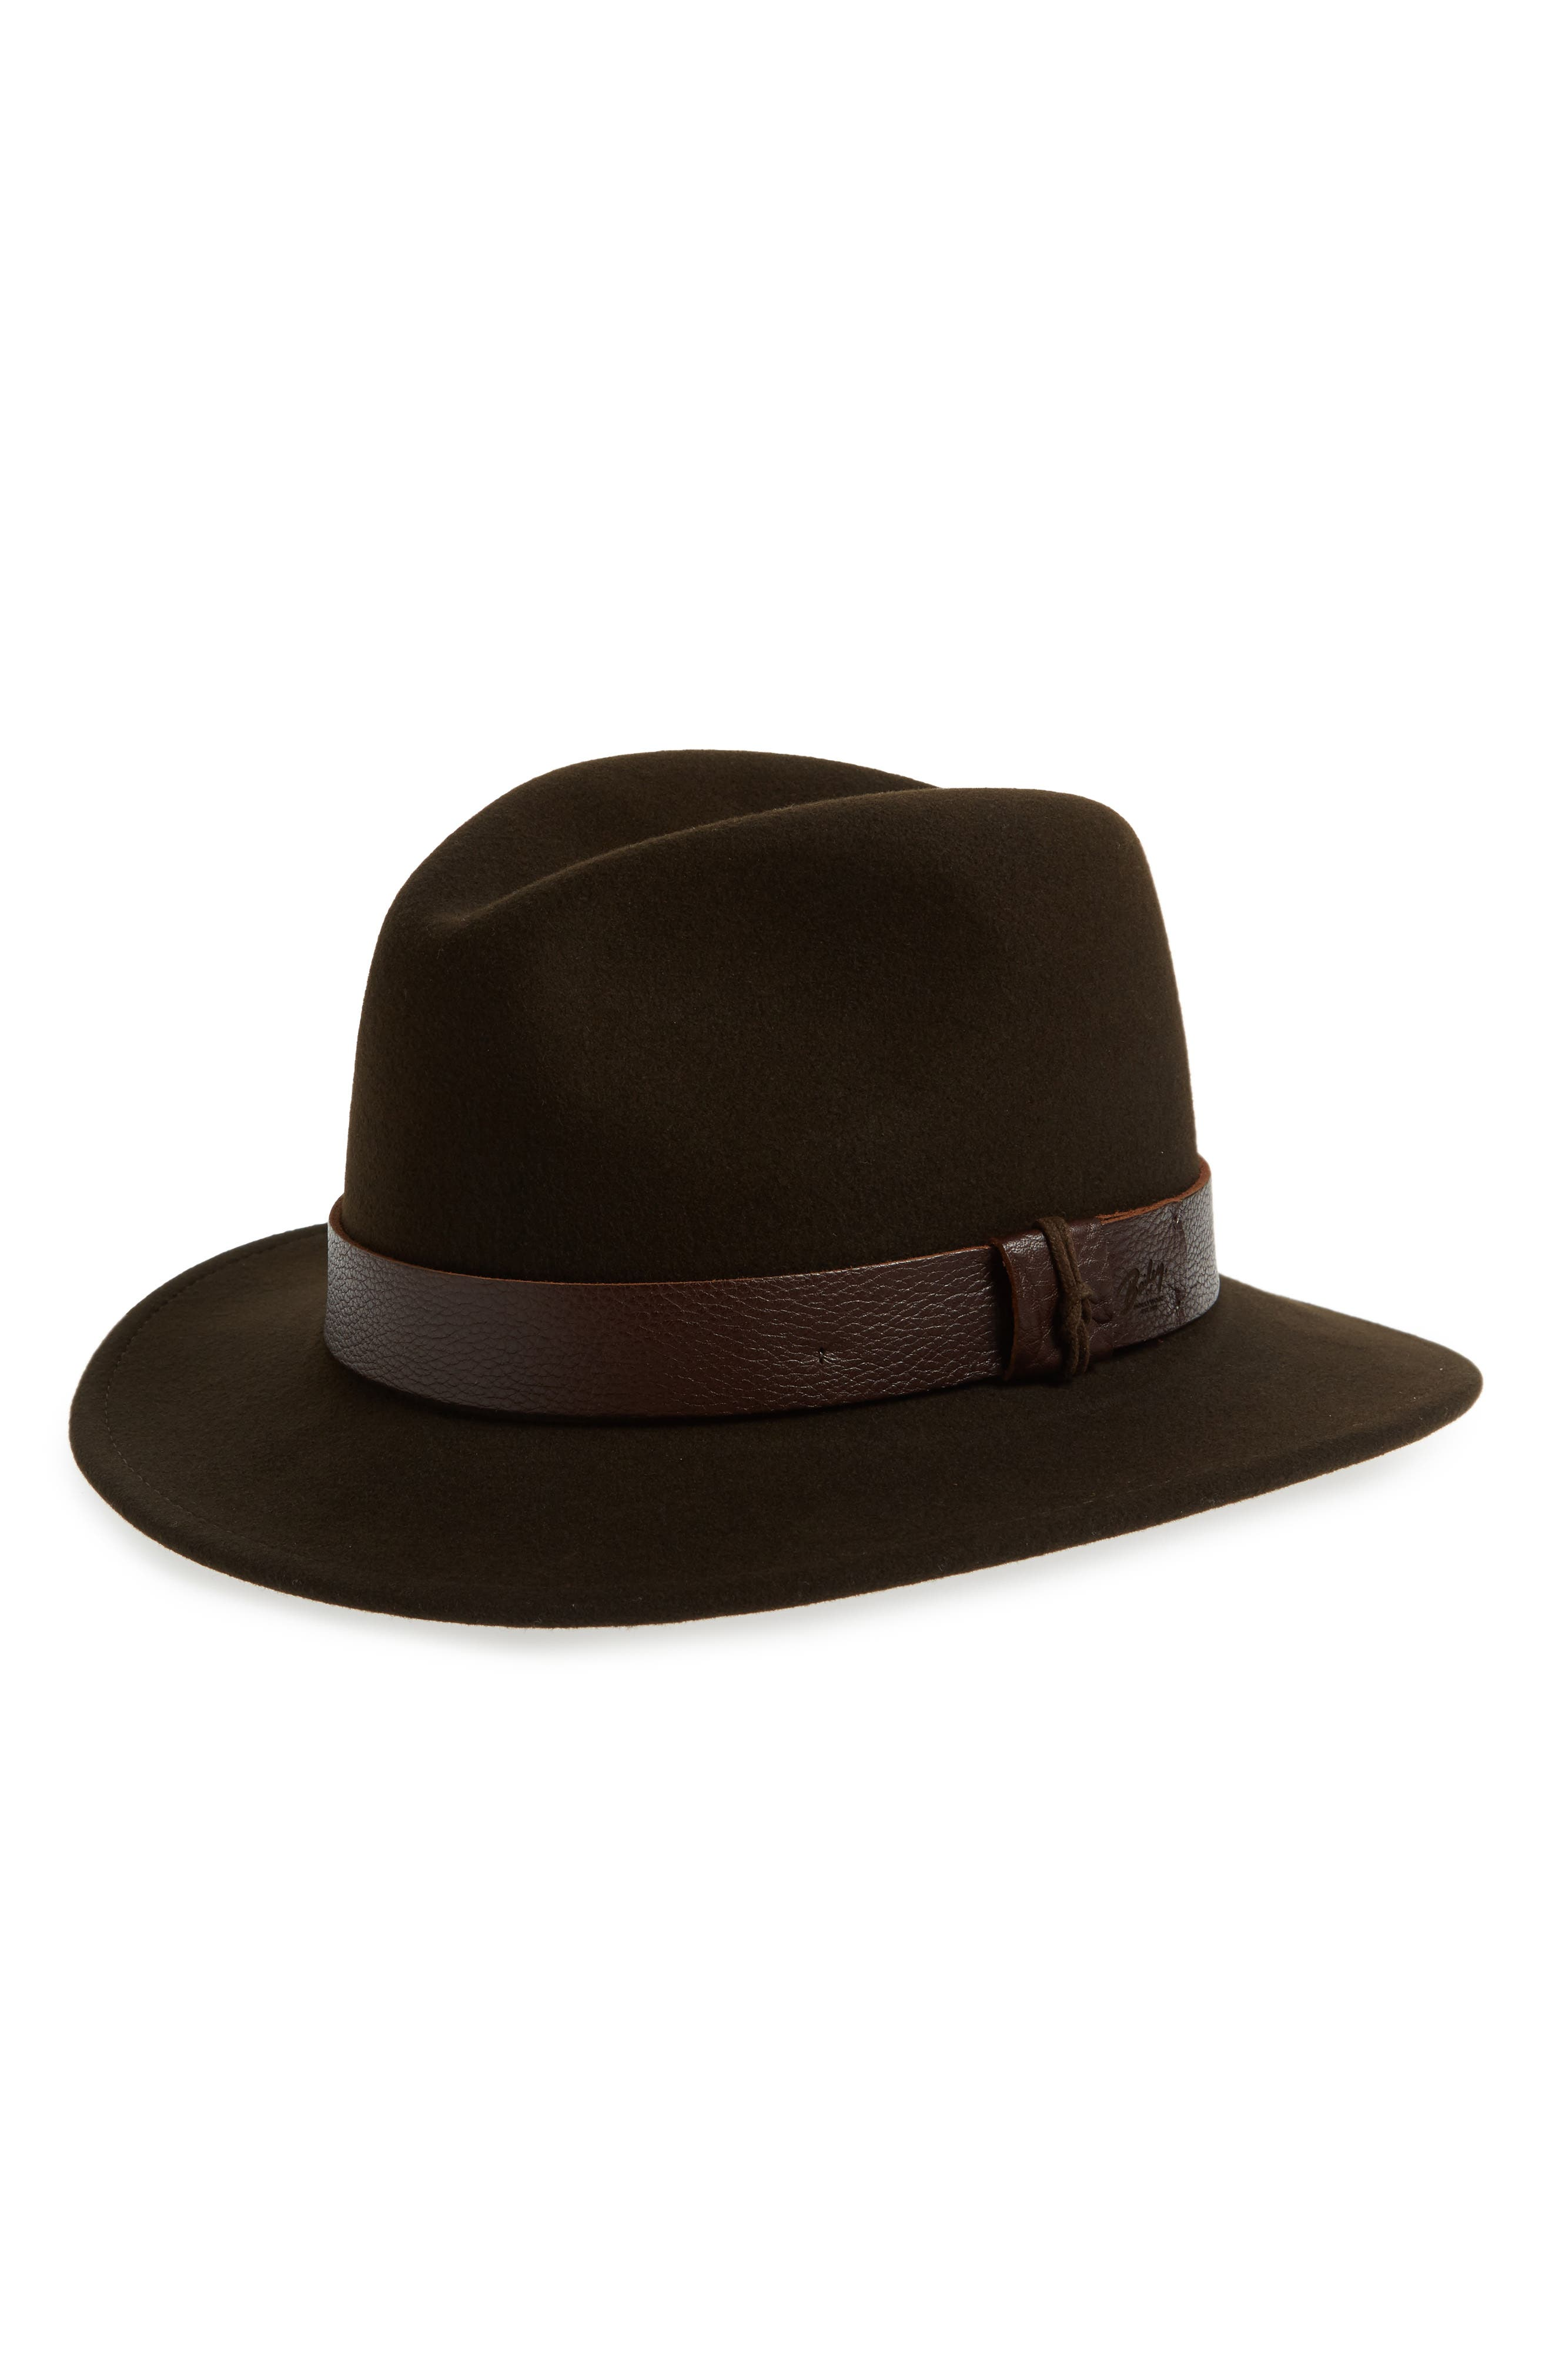 Bailey Prindle Wool Fedora